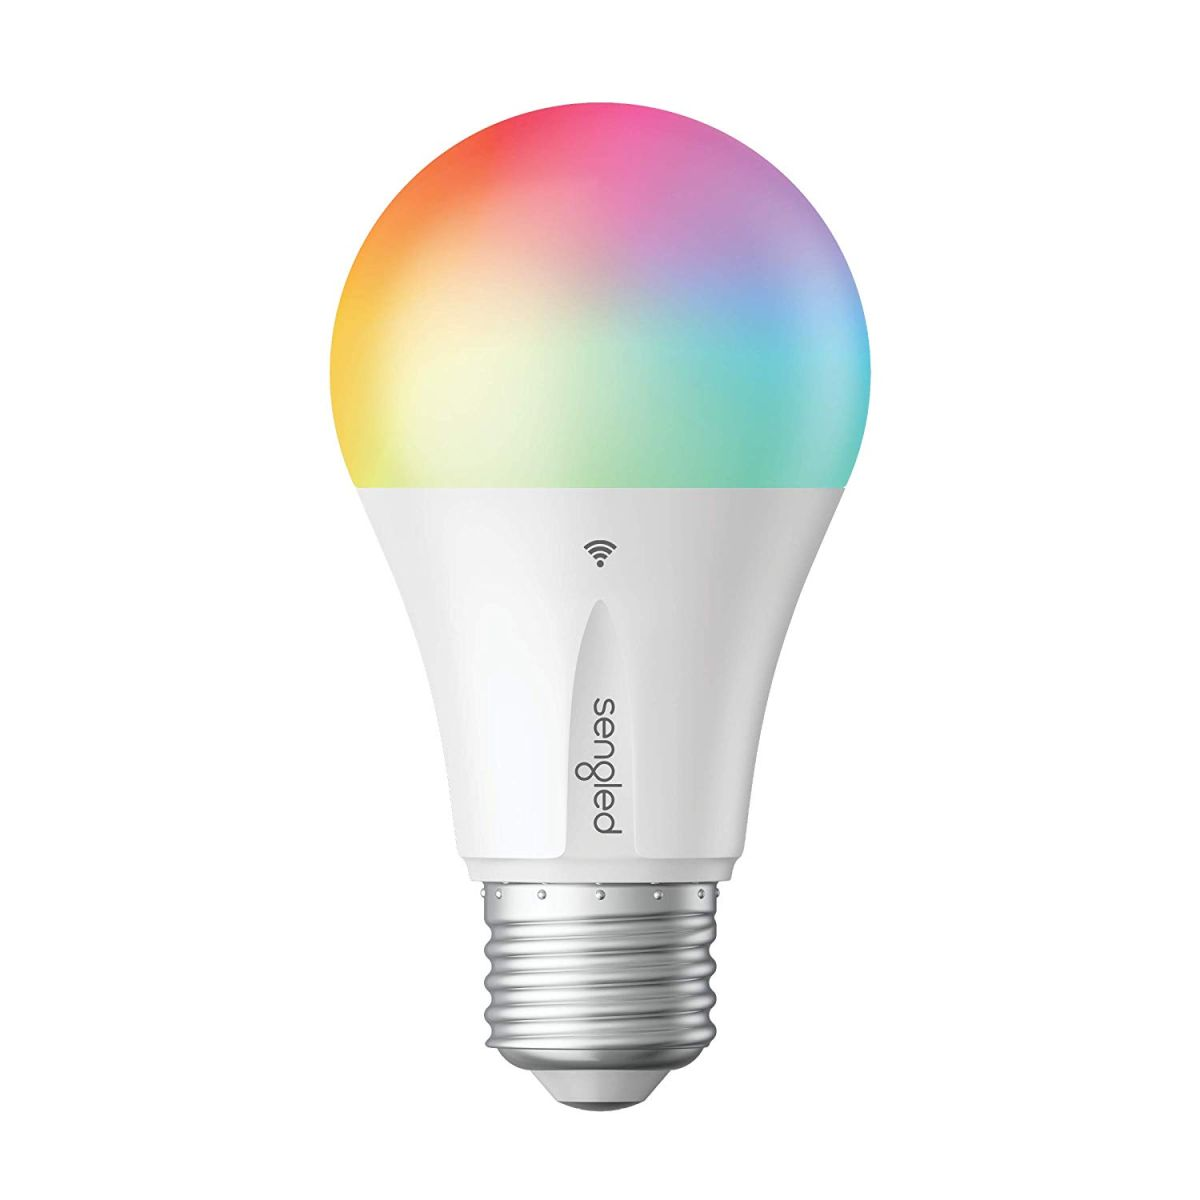 Best Smart Light Bulbs for 2019 | Tom's Guide